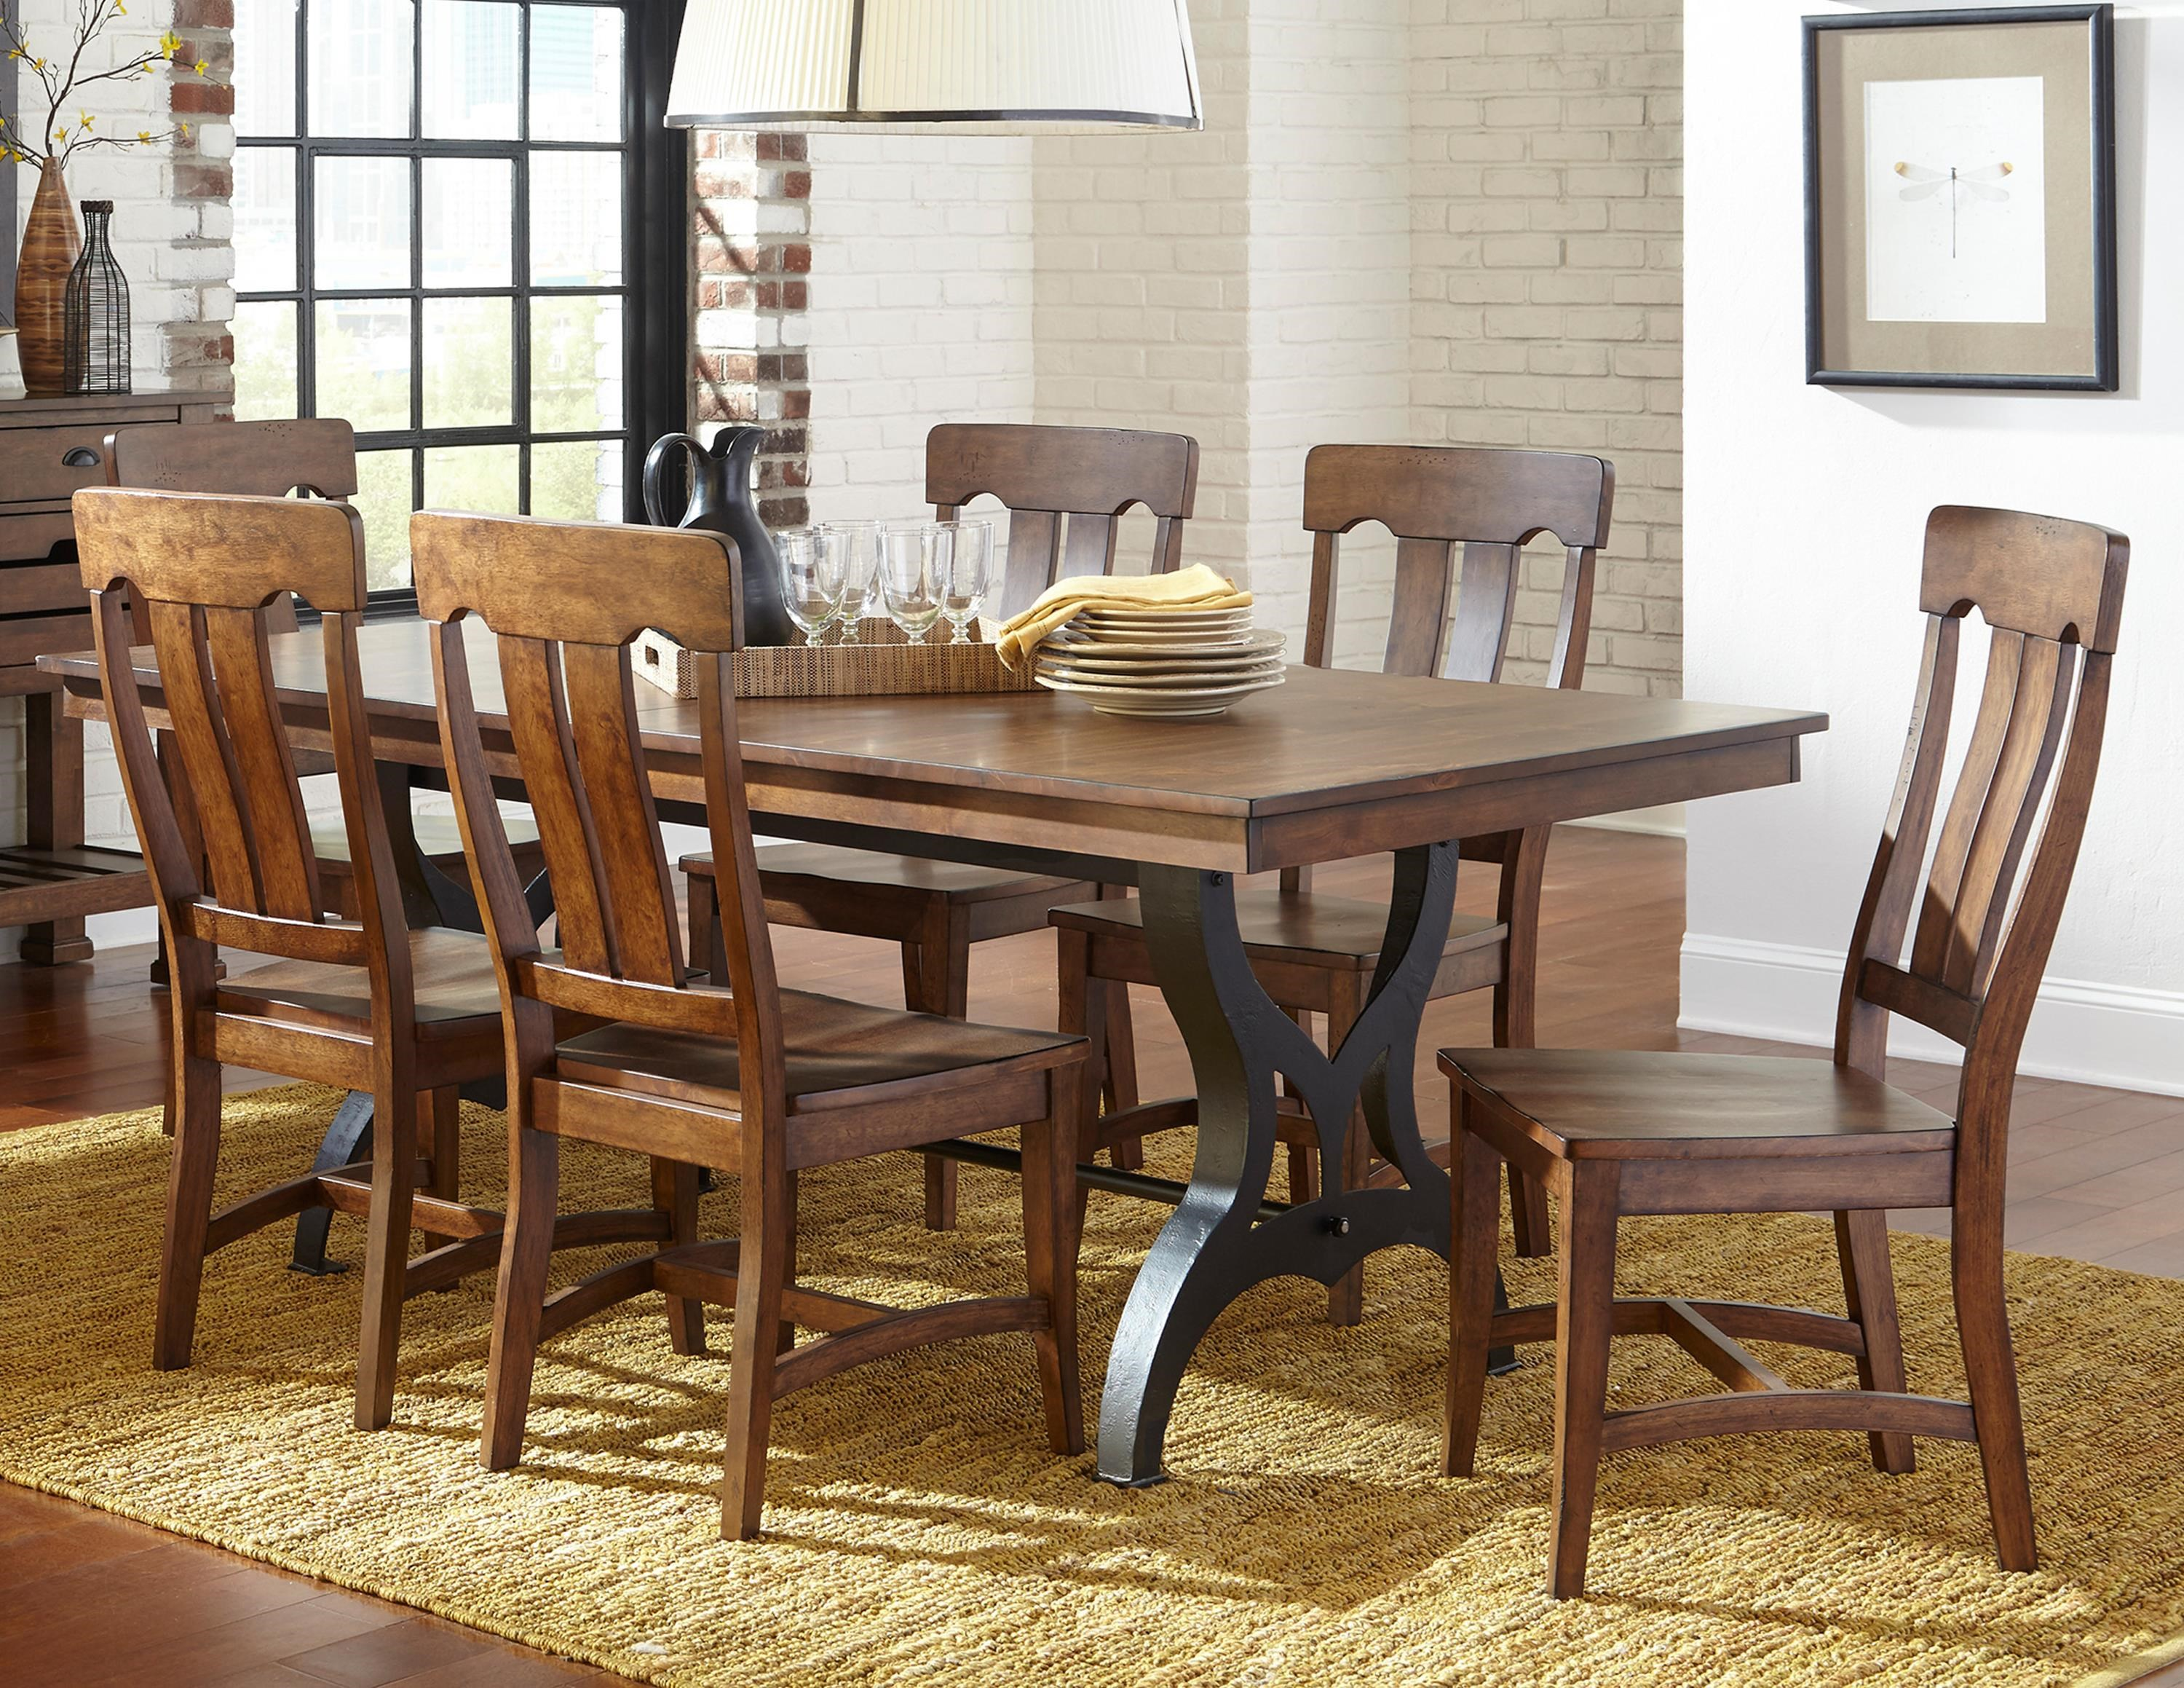 Breakfast Room Tables The District 5 Piece Table Chair Set With Leaf By Intercon At Wayside Furniture